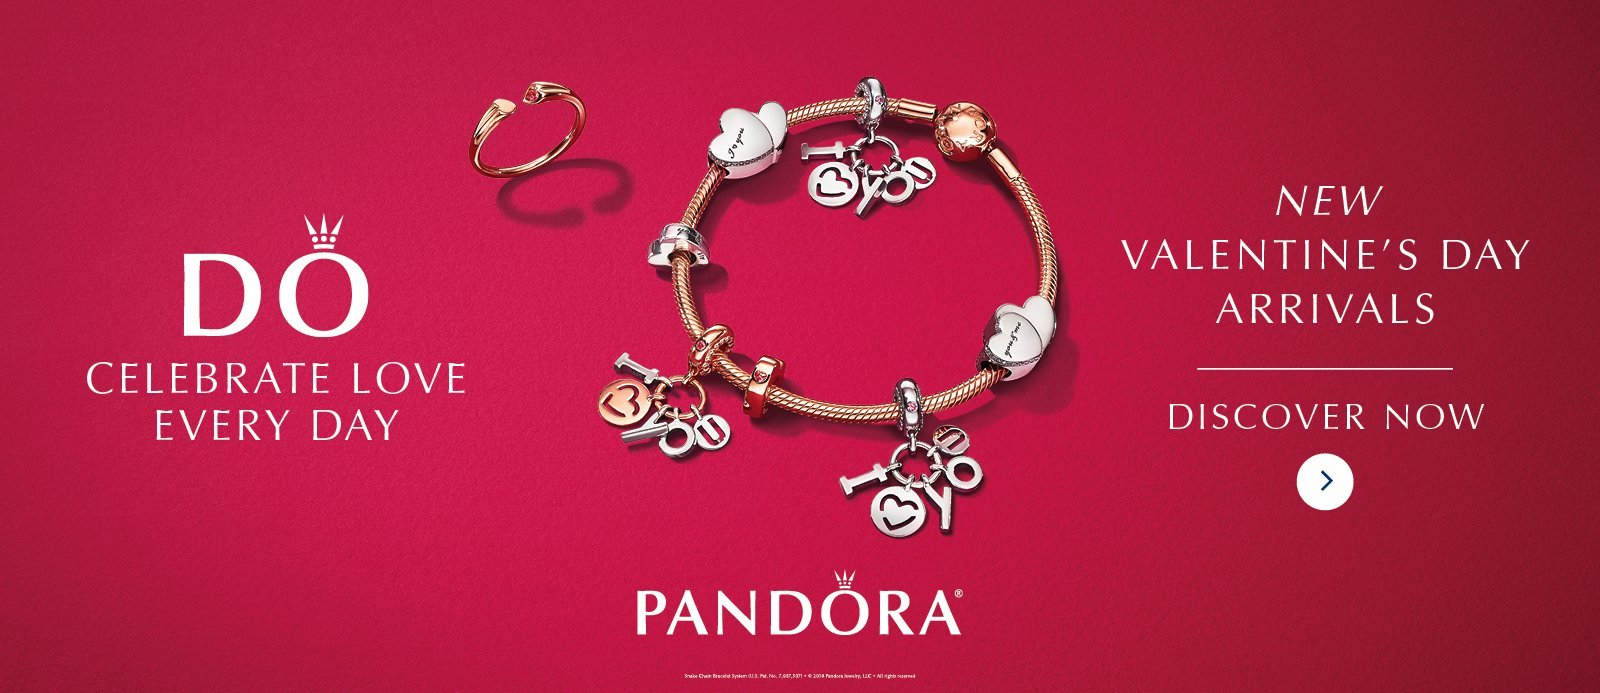 charms gift love valentine pandora day valentines bracelet red s xingjewelry image theme pcs products